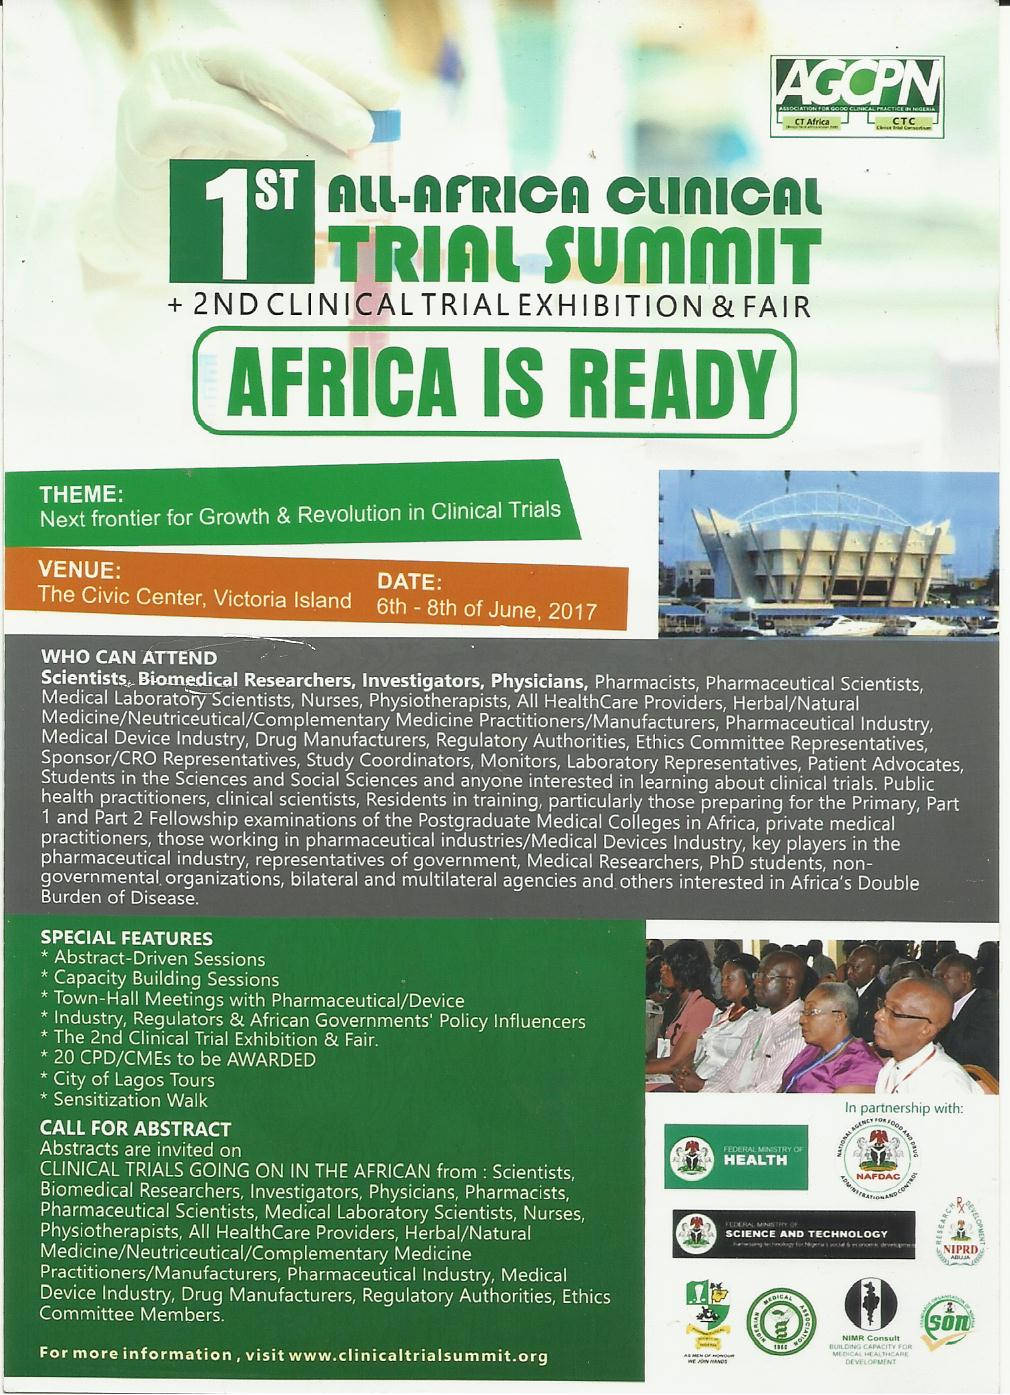 All-African Clinical Trial Summit